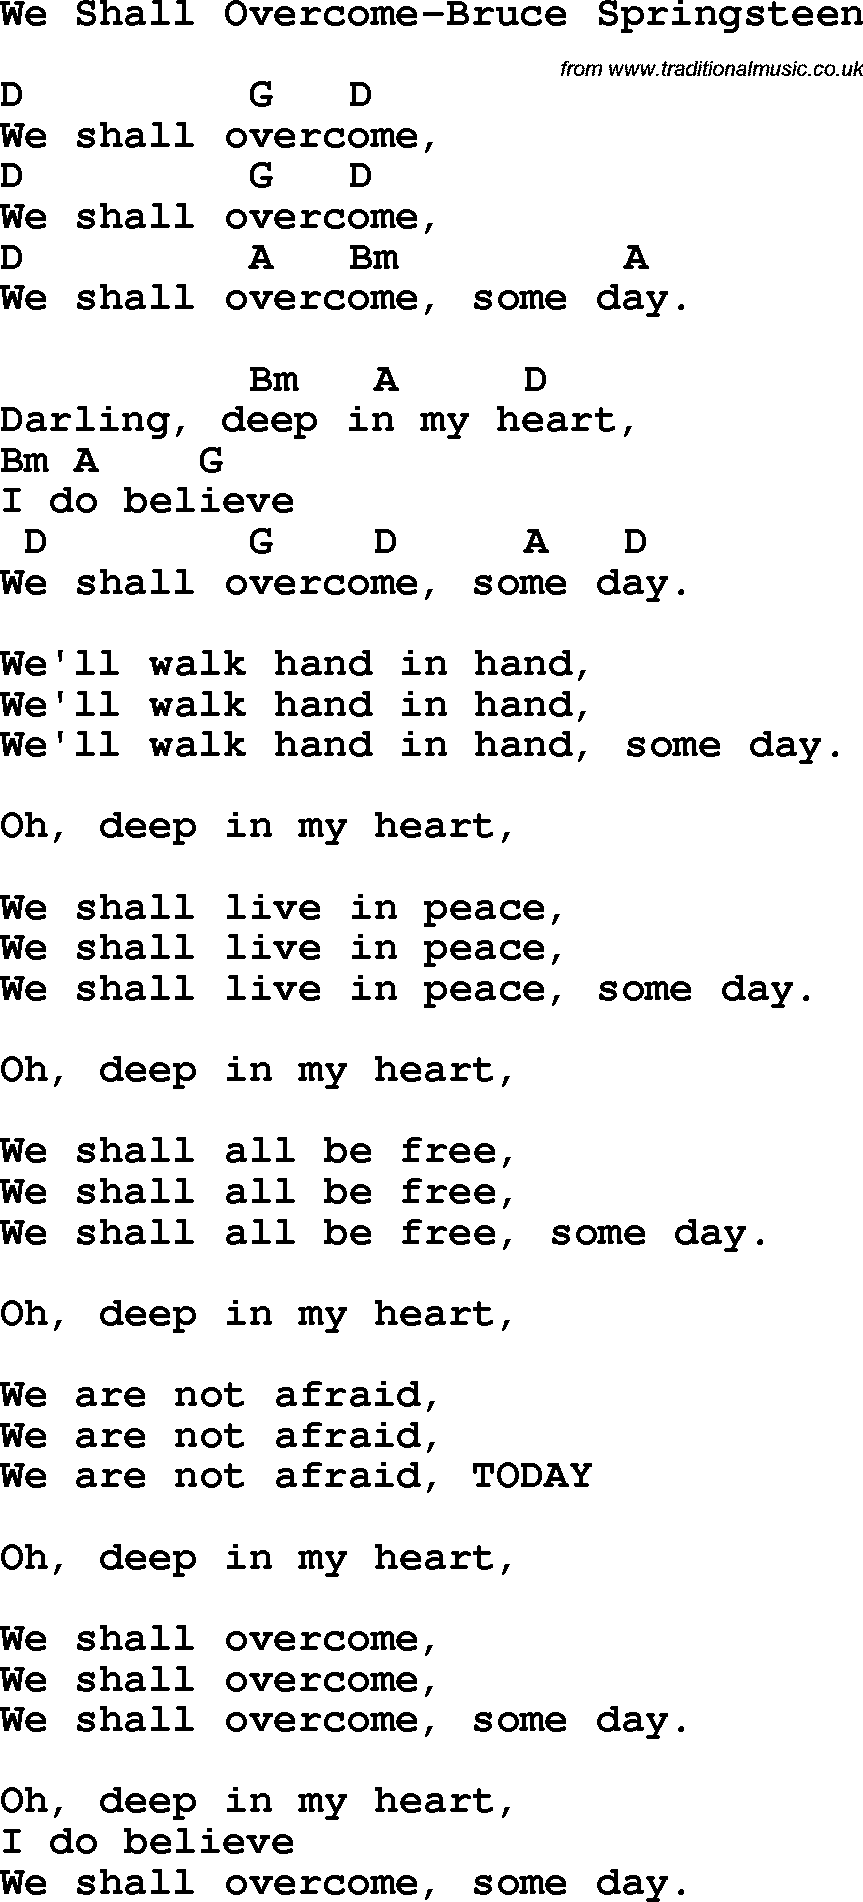 Protest song we shall overcome bruce springsteen lyrics and chords protest song we shall overcome bruce springsteen lyrics and chords hexwebz Image collections